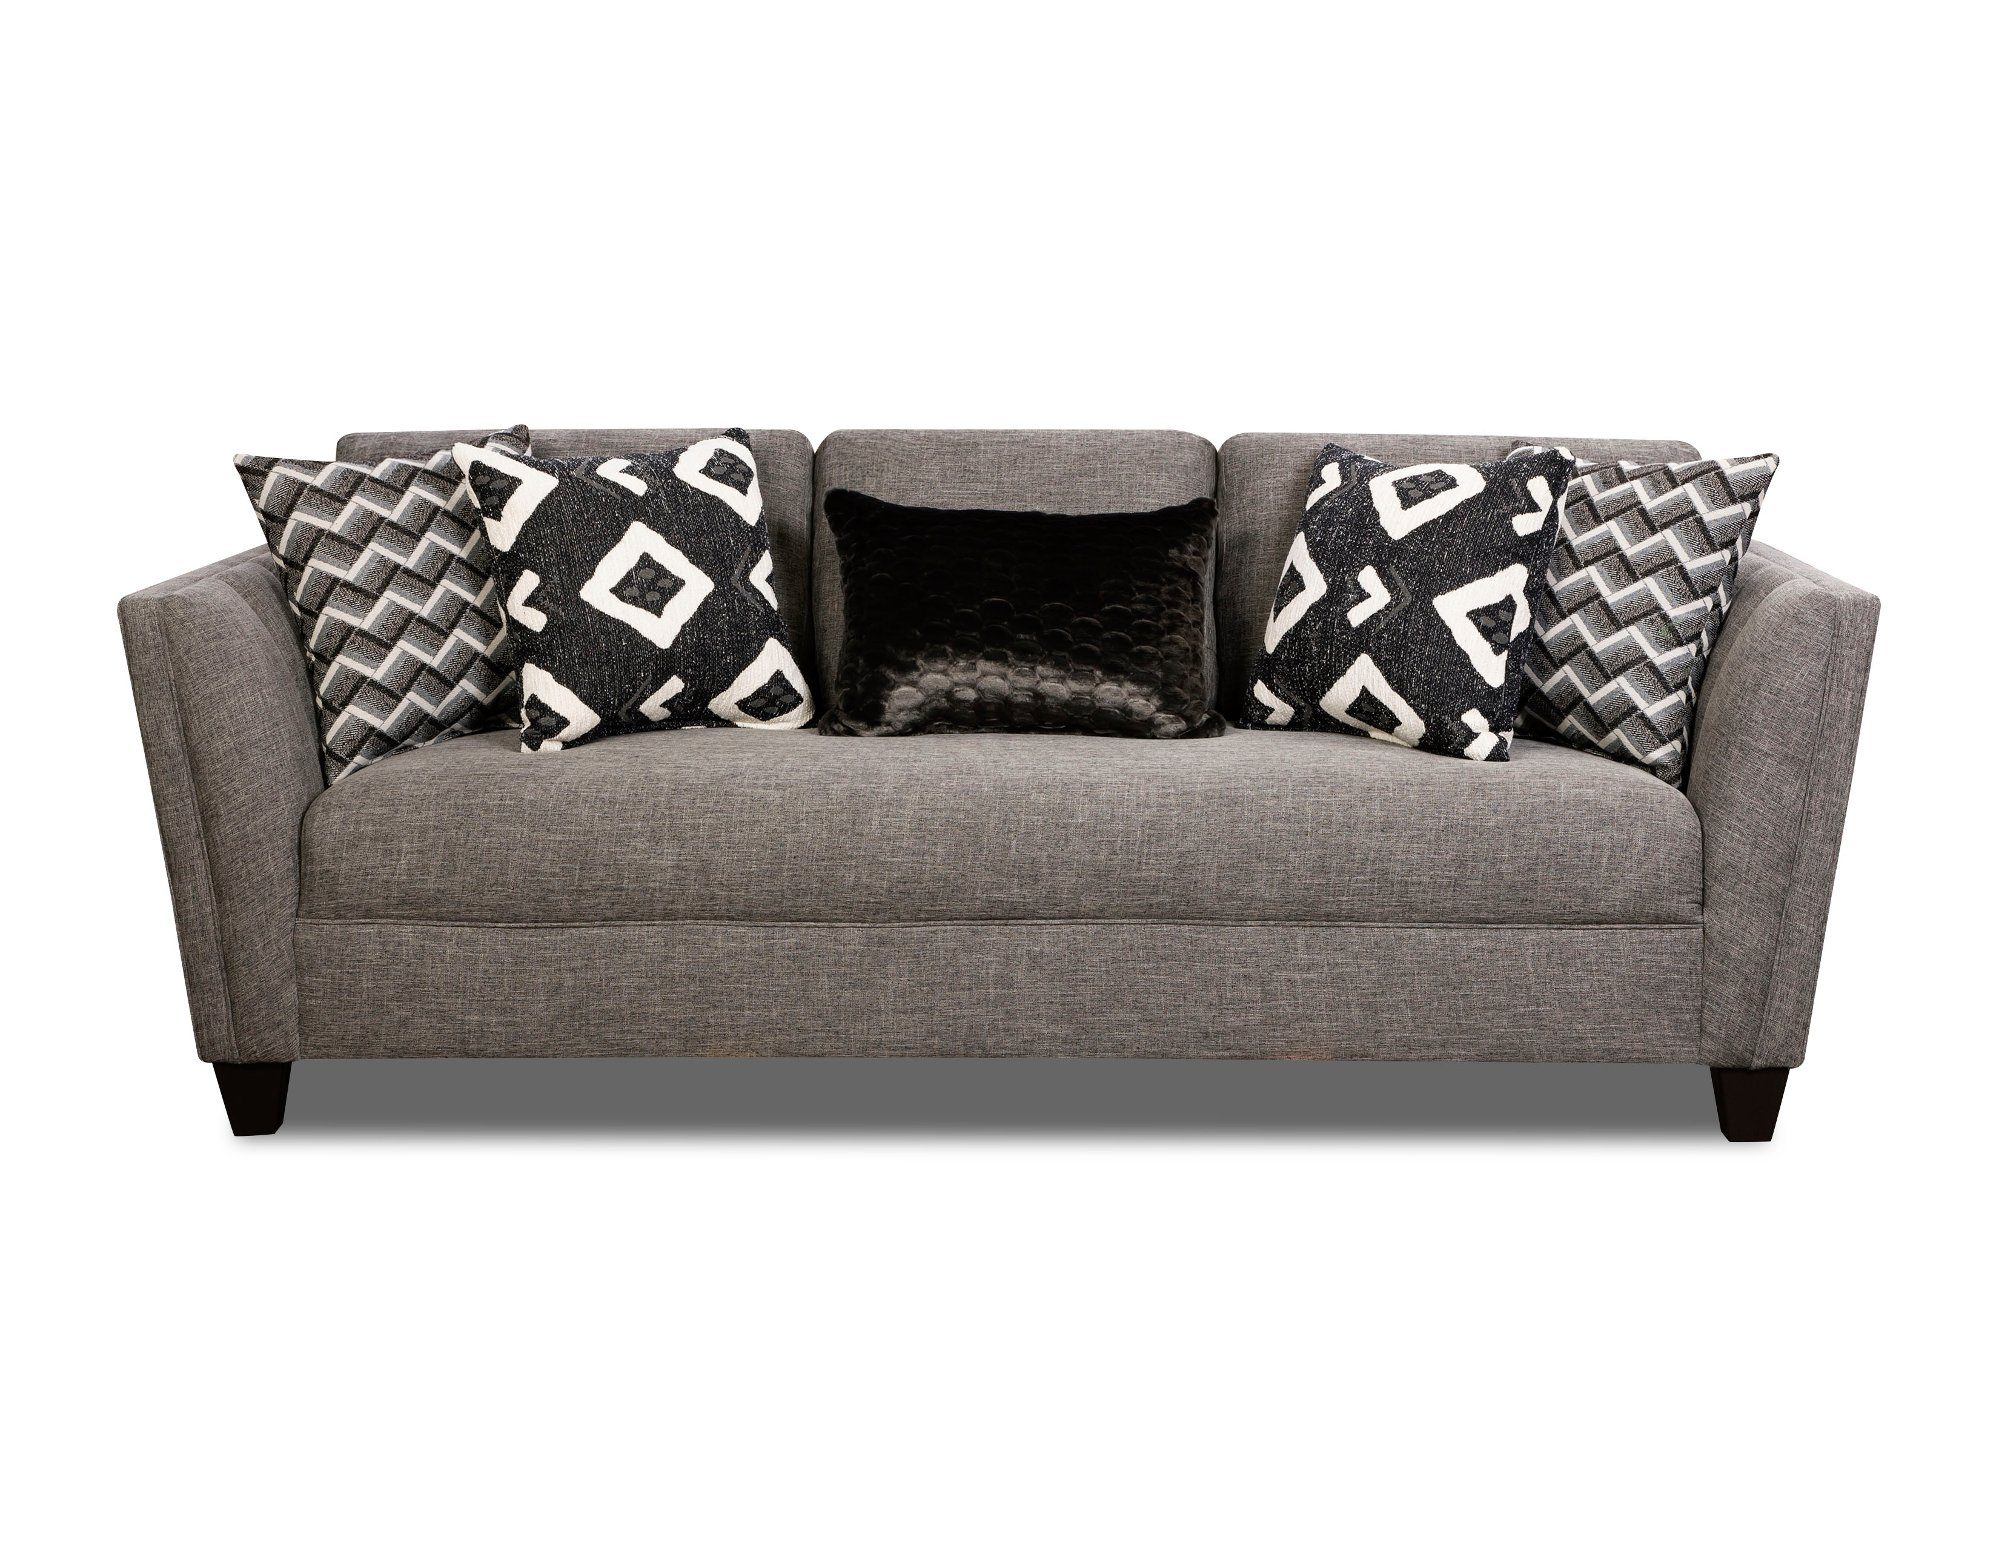 jamestown 2 piece sofa and loveseat group in gray stickley fayetteville sleeper modern contemporary living room set carbon